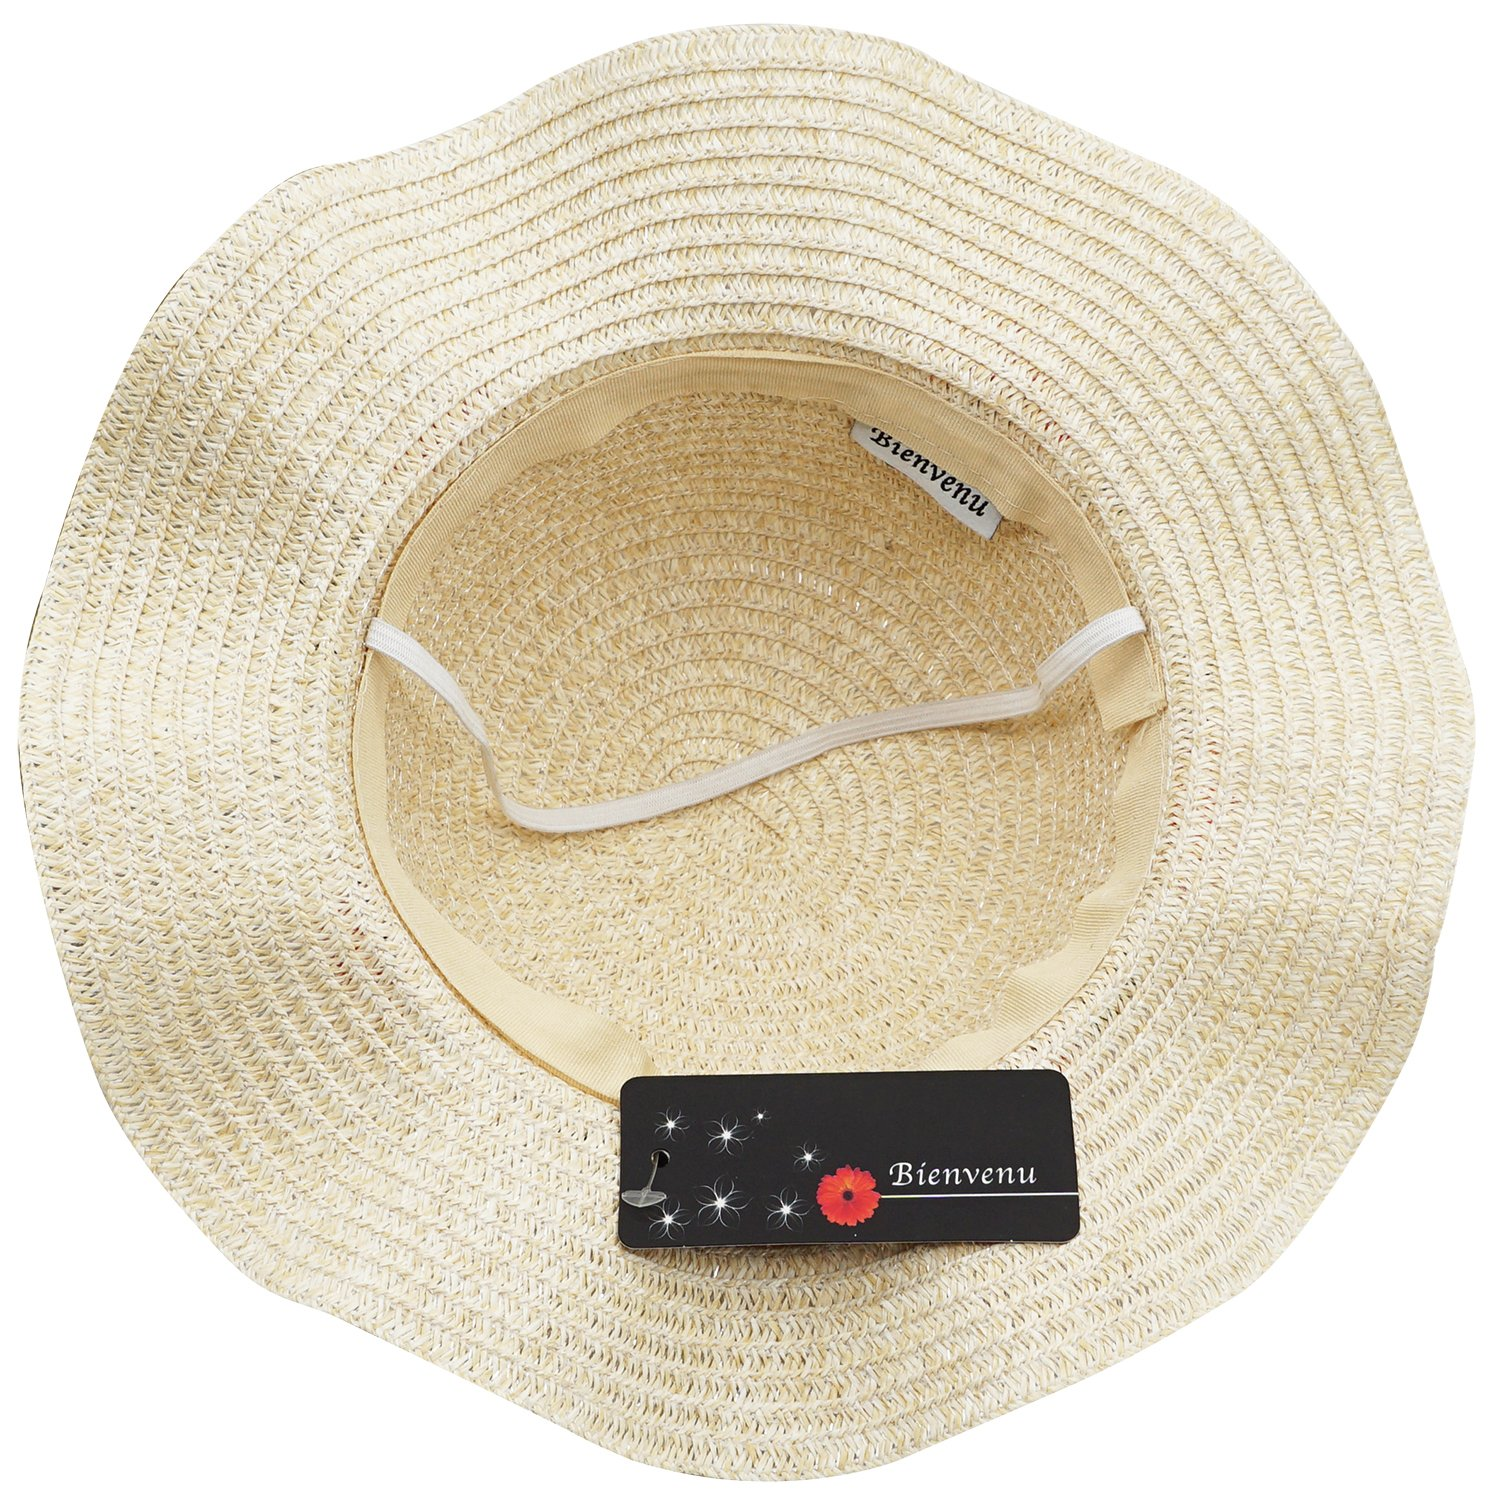 Bienvenu Sun Straw Hat Kids Girls Large Wide Brim Travel Beach Beanie Cap,Beige by Bienvenu (Image #8)